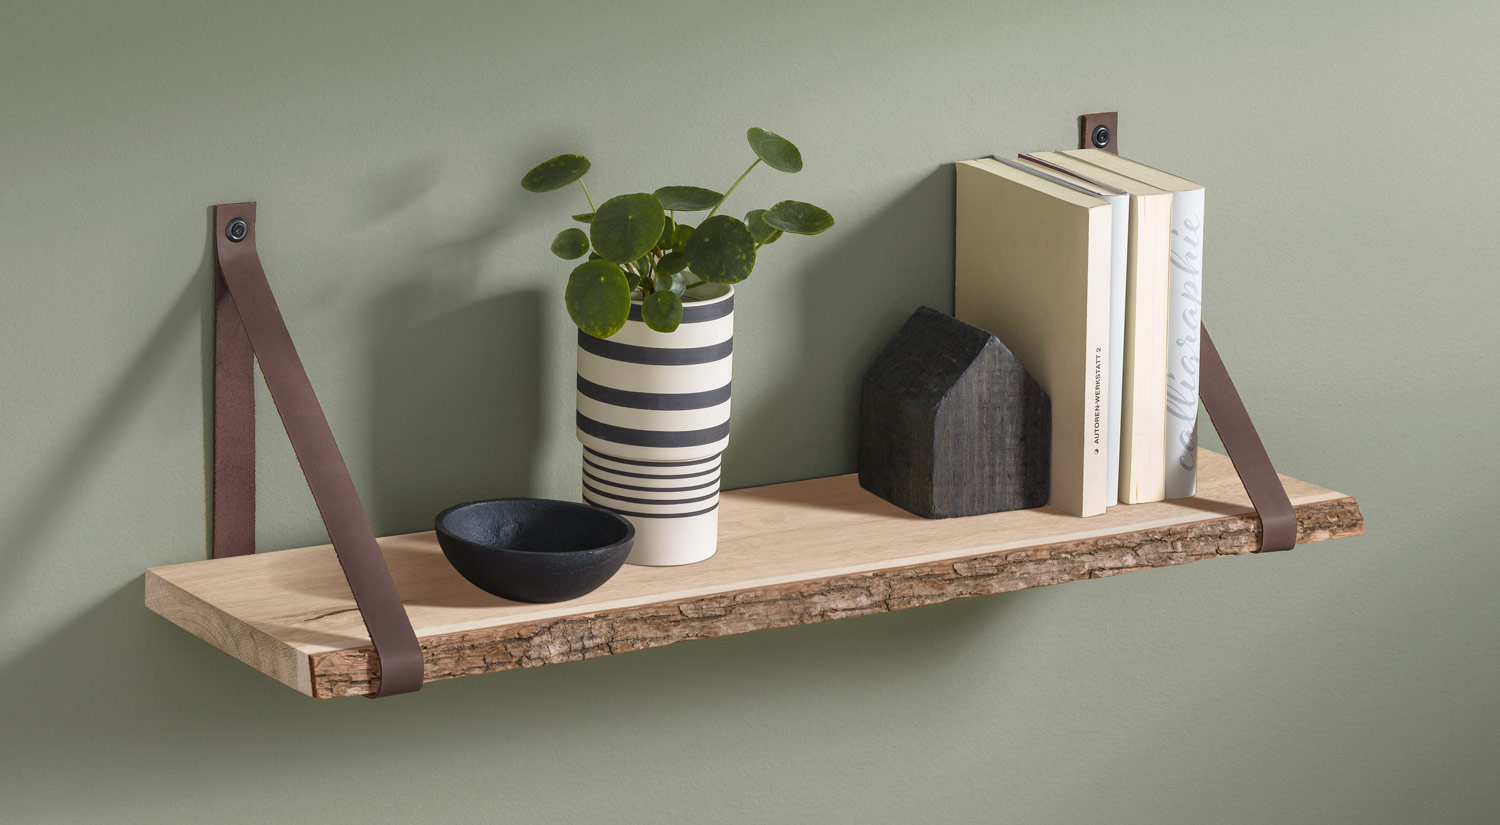 Wooden Wall Shelves - NATURE+LOOP in the living room